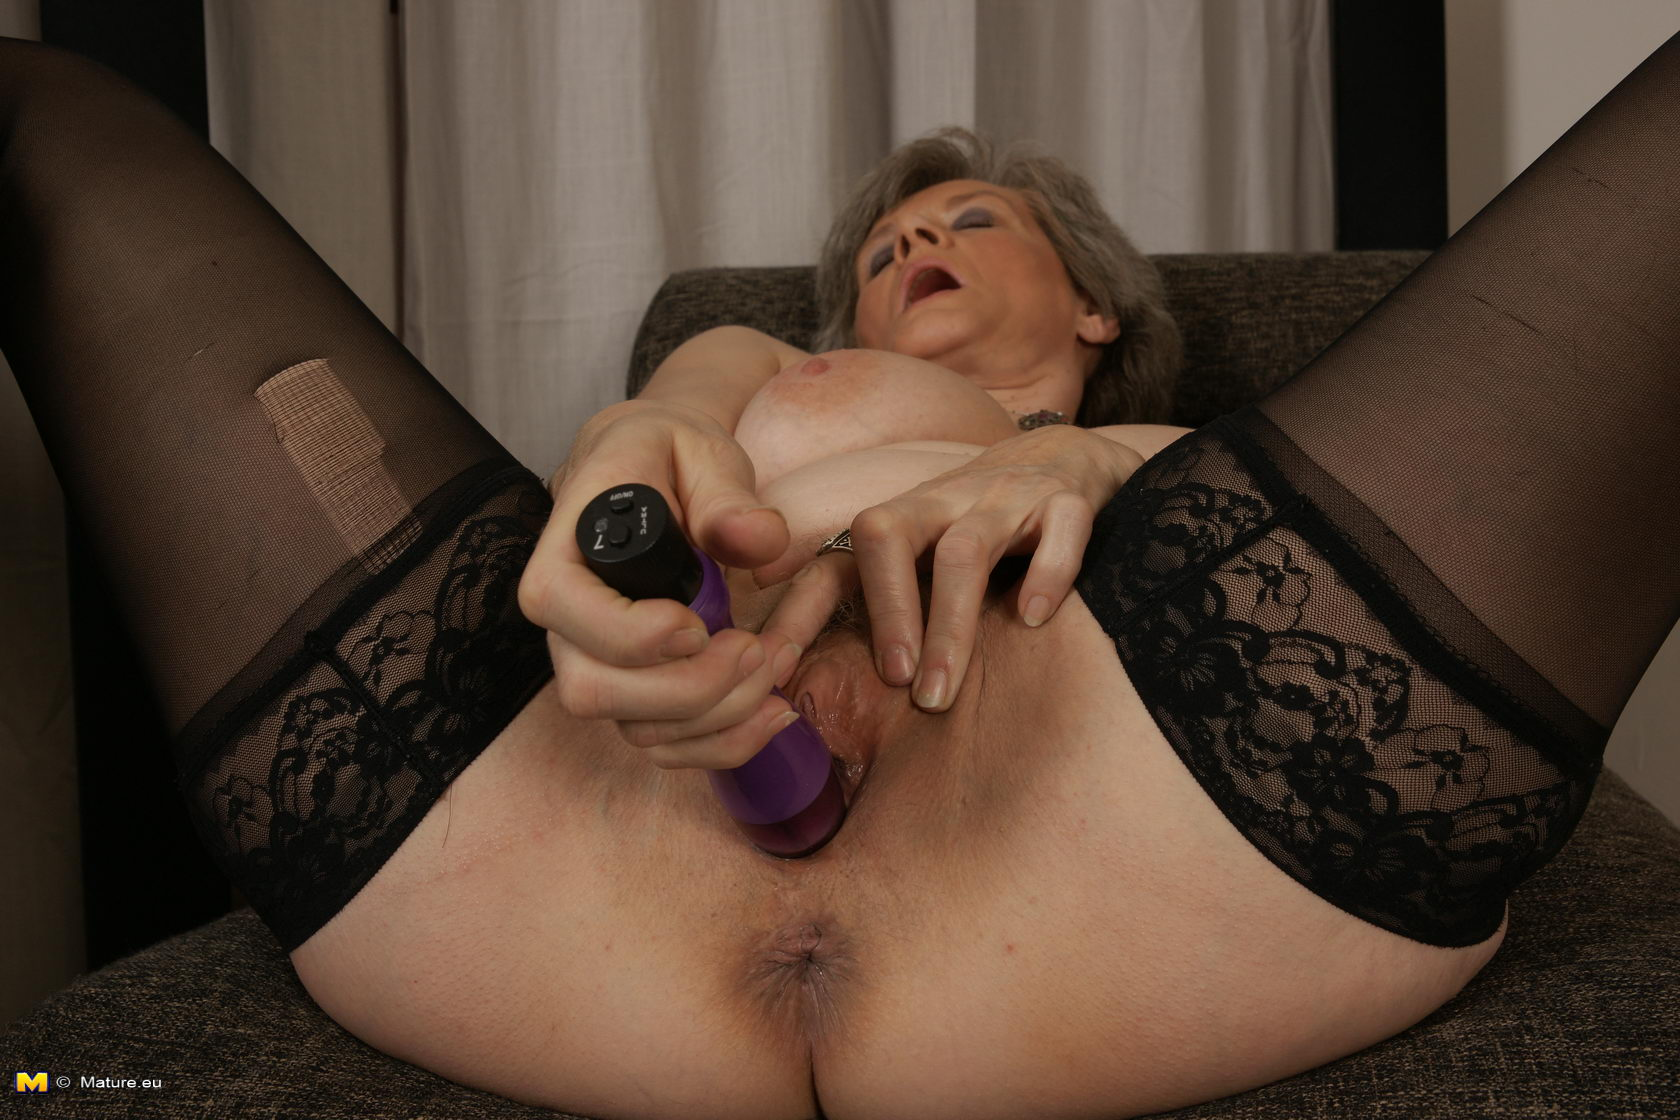 slut Naughty playing with herself mature